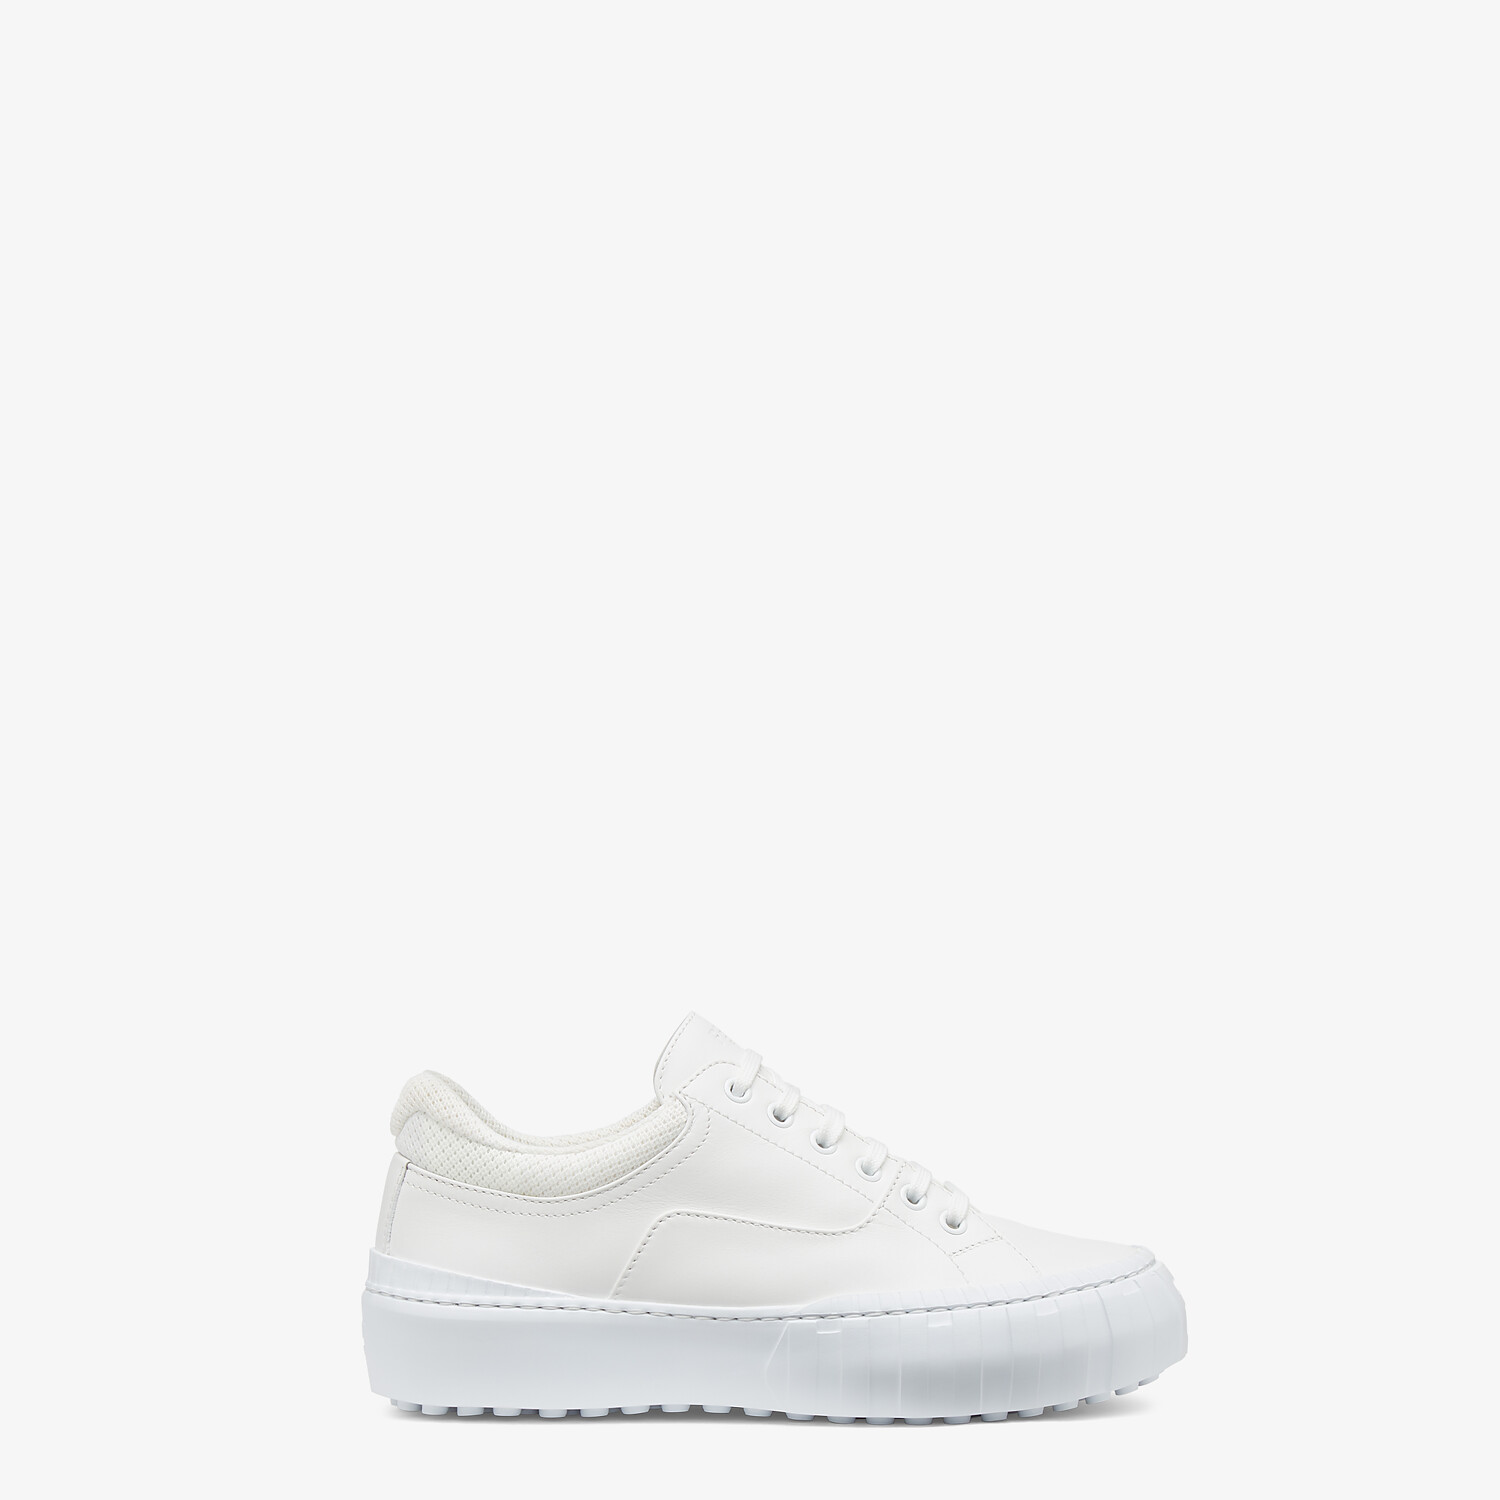 FENDI FENDI FORCE - White fabric and leather low tops - view 1 detail